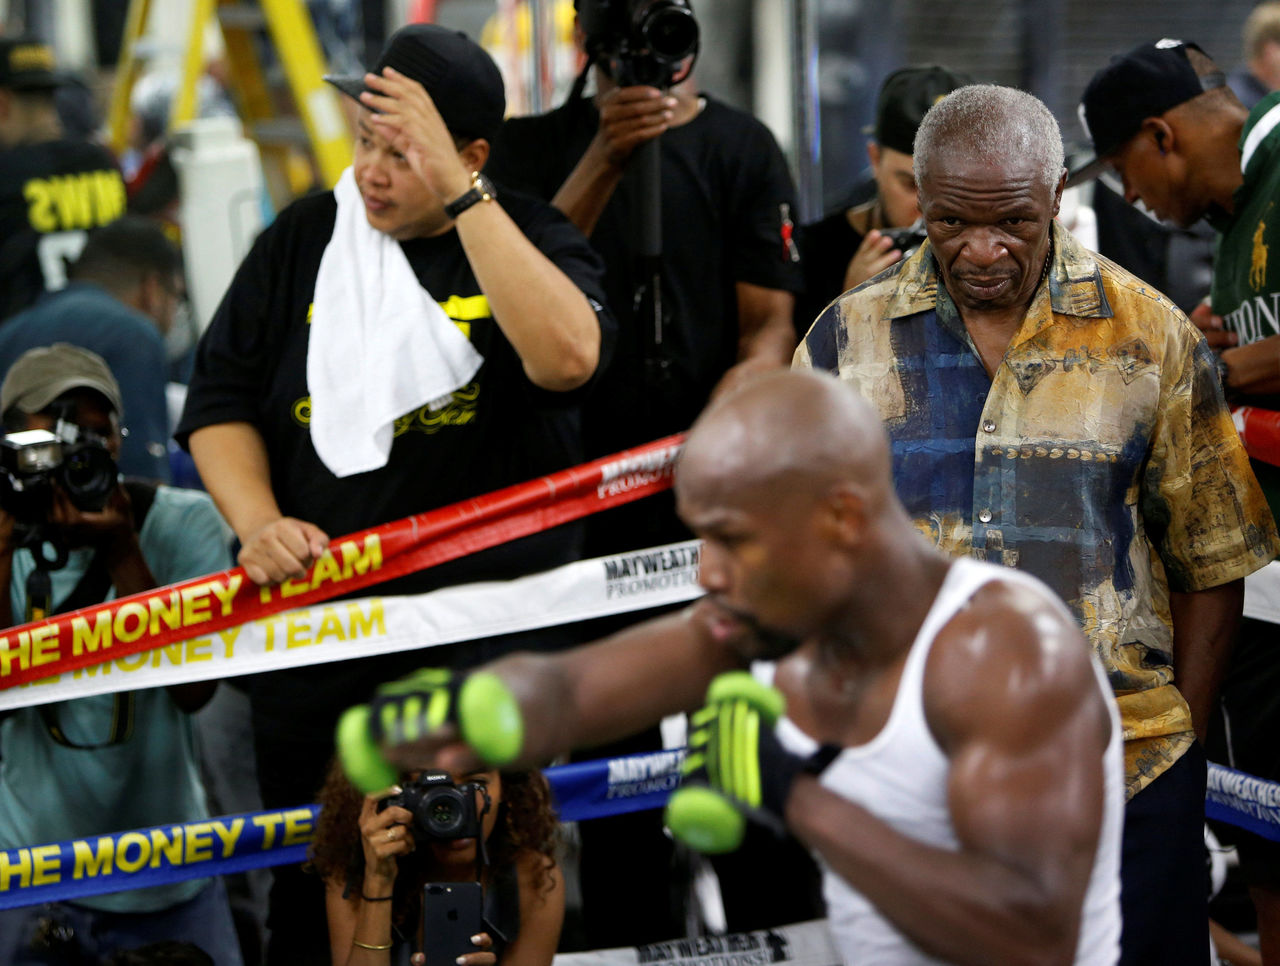 Cropped 2017 08 11t021843z 526352189 rc173589e8a0 rtrmadp 3 boxing mayweather